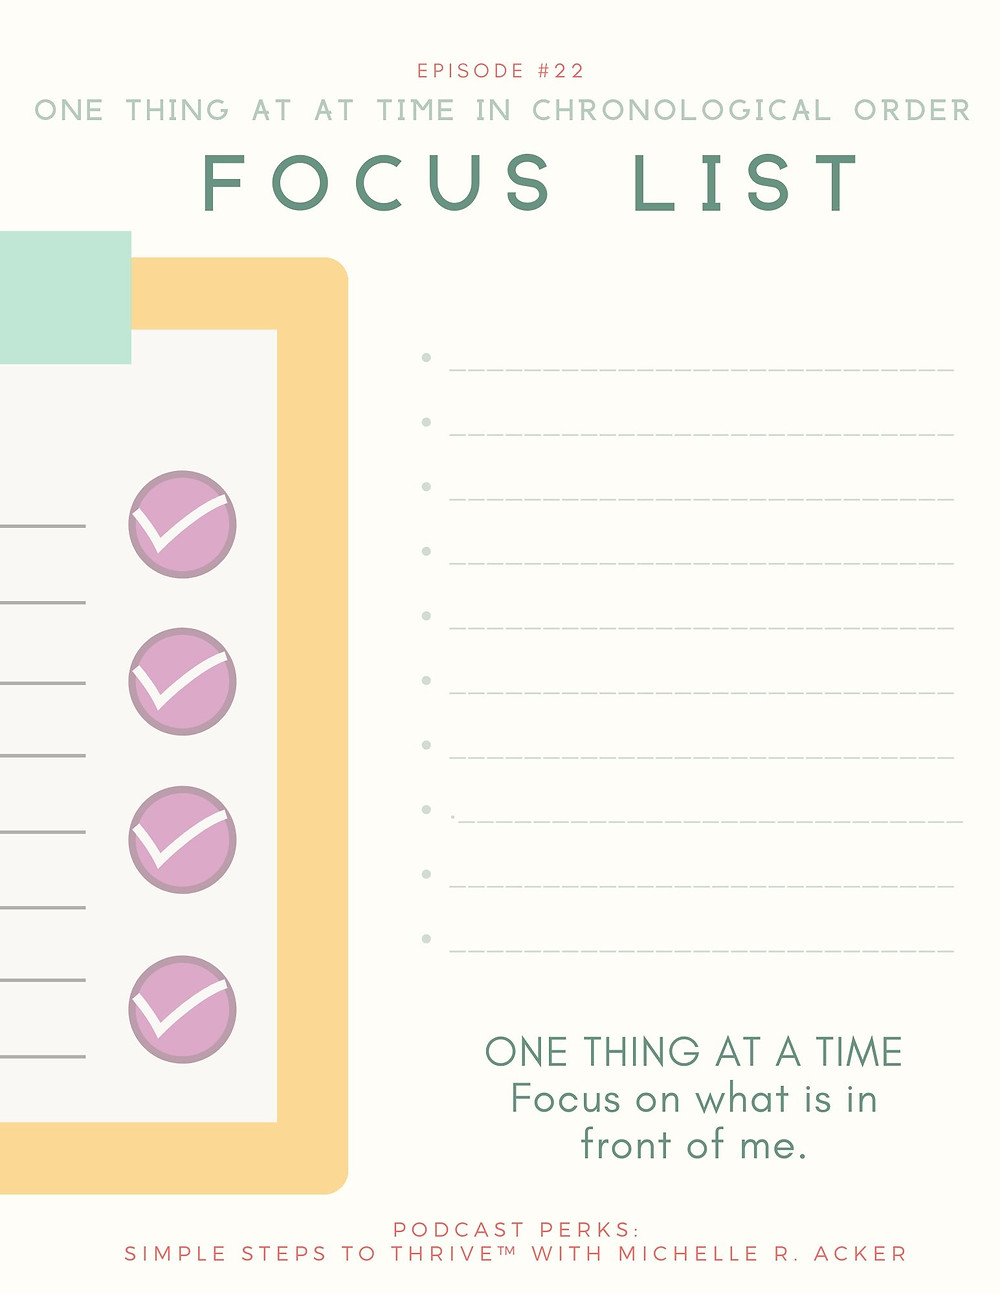 Focus List: Face down FOMO and focus on what matters most to you